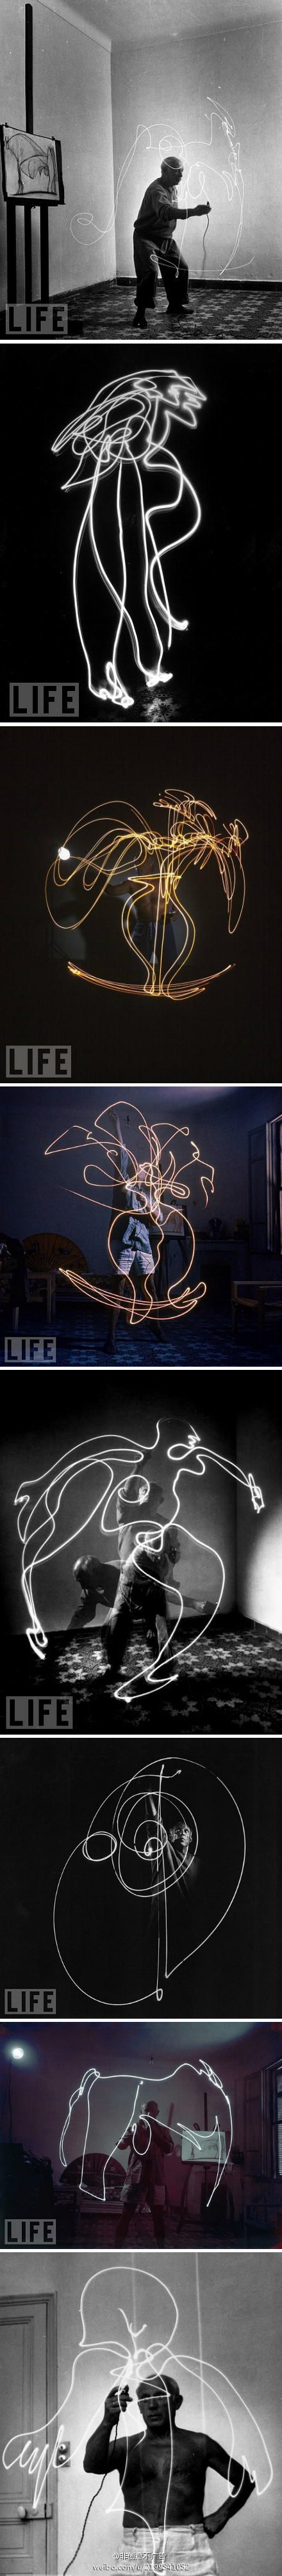 """Pablo Picasso """"draws"""" in the air with light, 1949. Photography by Gjon Mili. S)"""